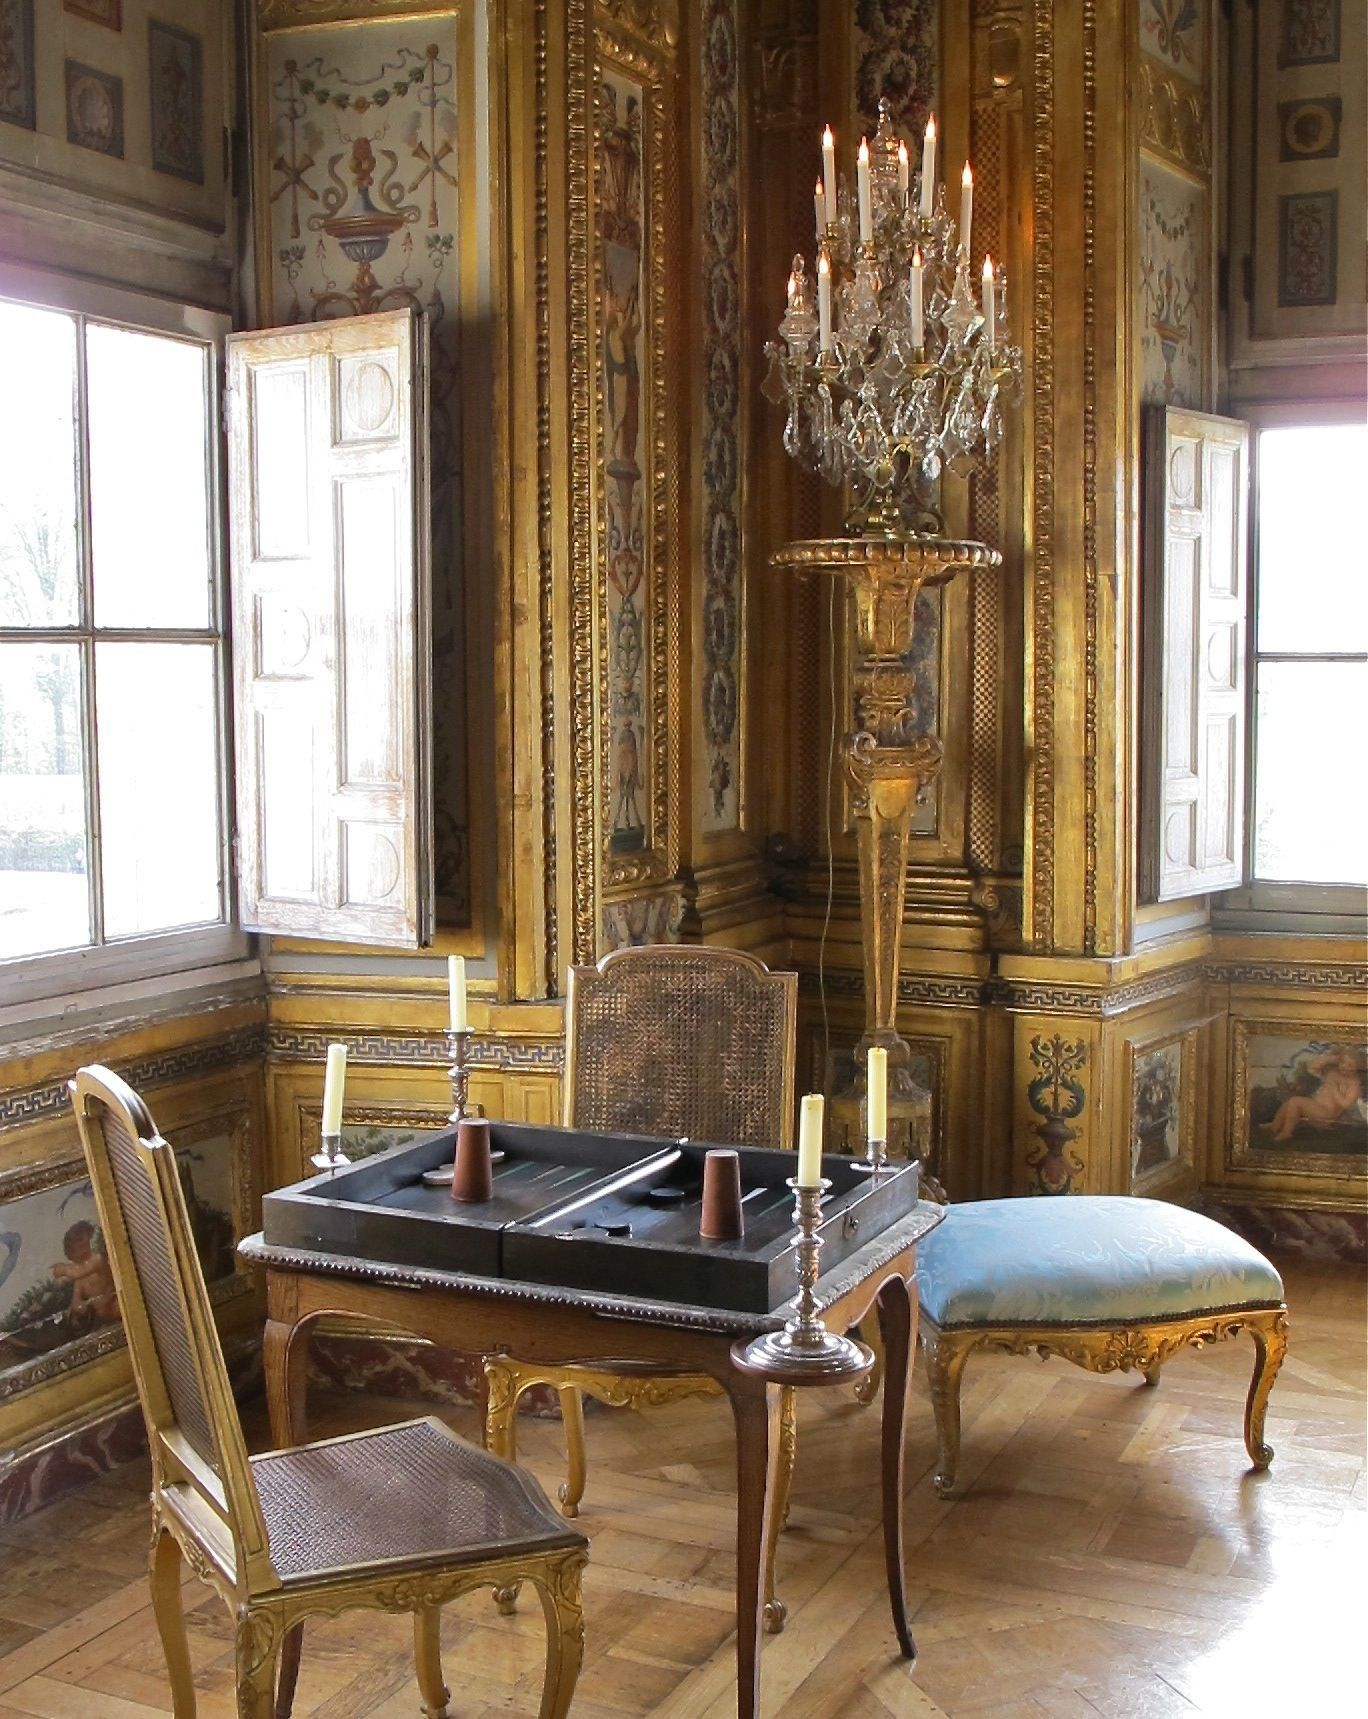 French Interior Decor French 17th Century Architecture And Décor Chateau Vaux